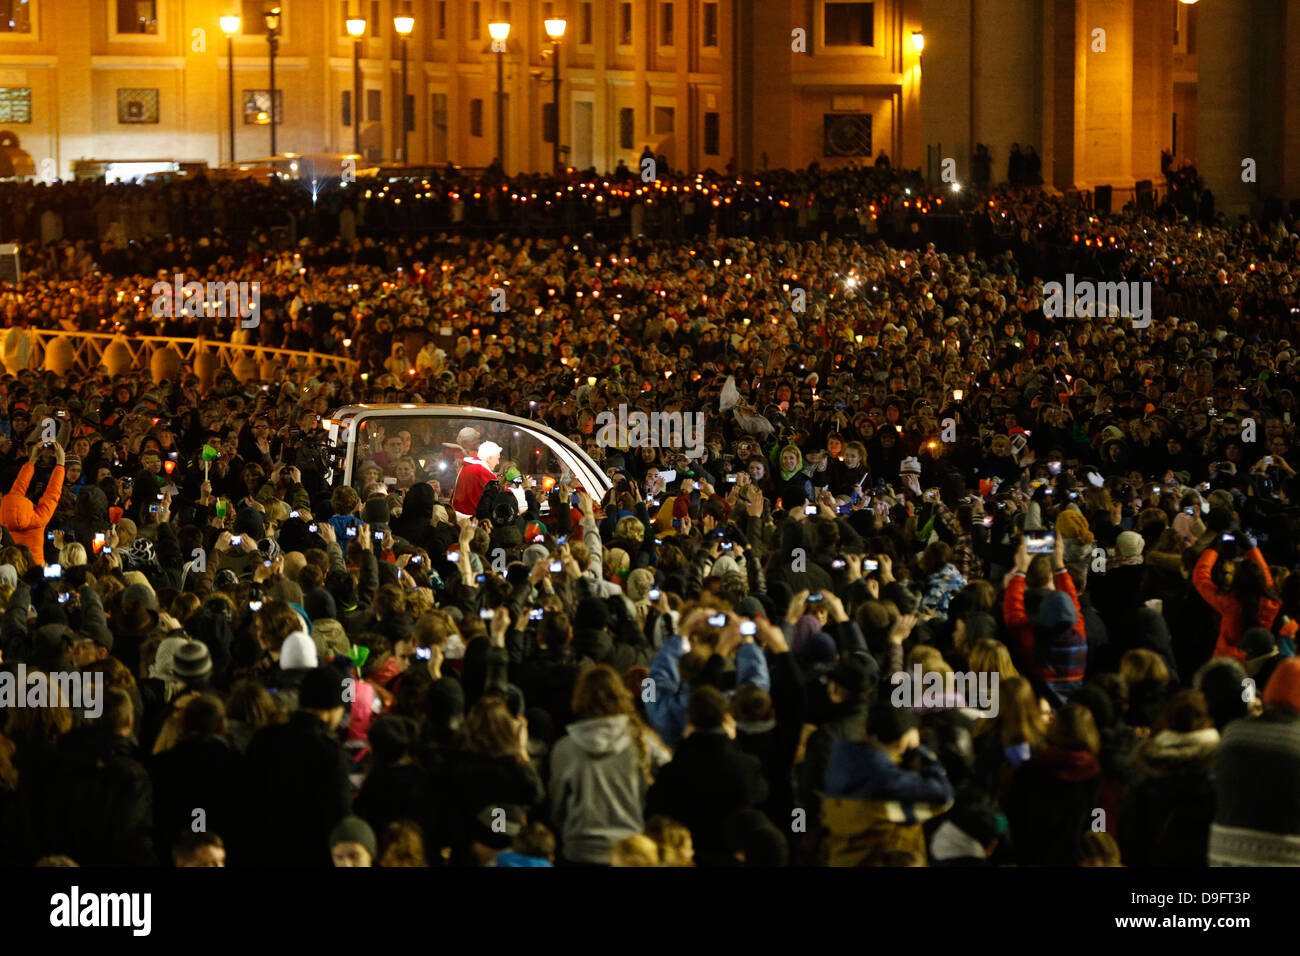 Thousands of people in St. Peter's Square pray with Pope Benedict XVI in Rome led by the Taize Community, Rome,Stock Photo